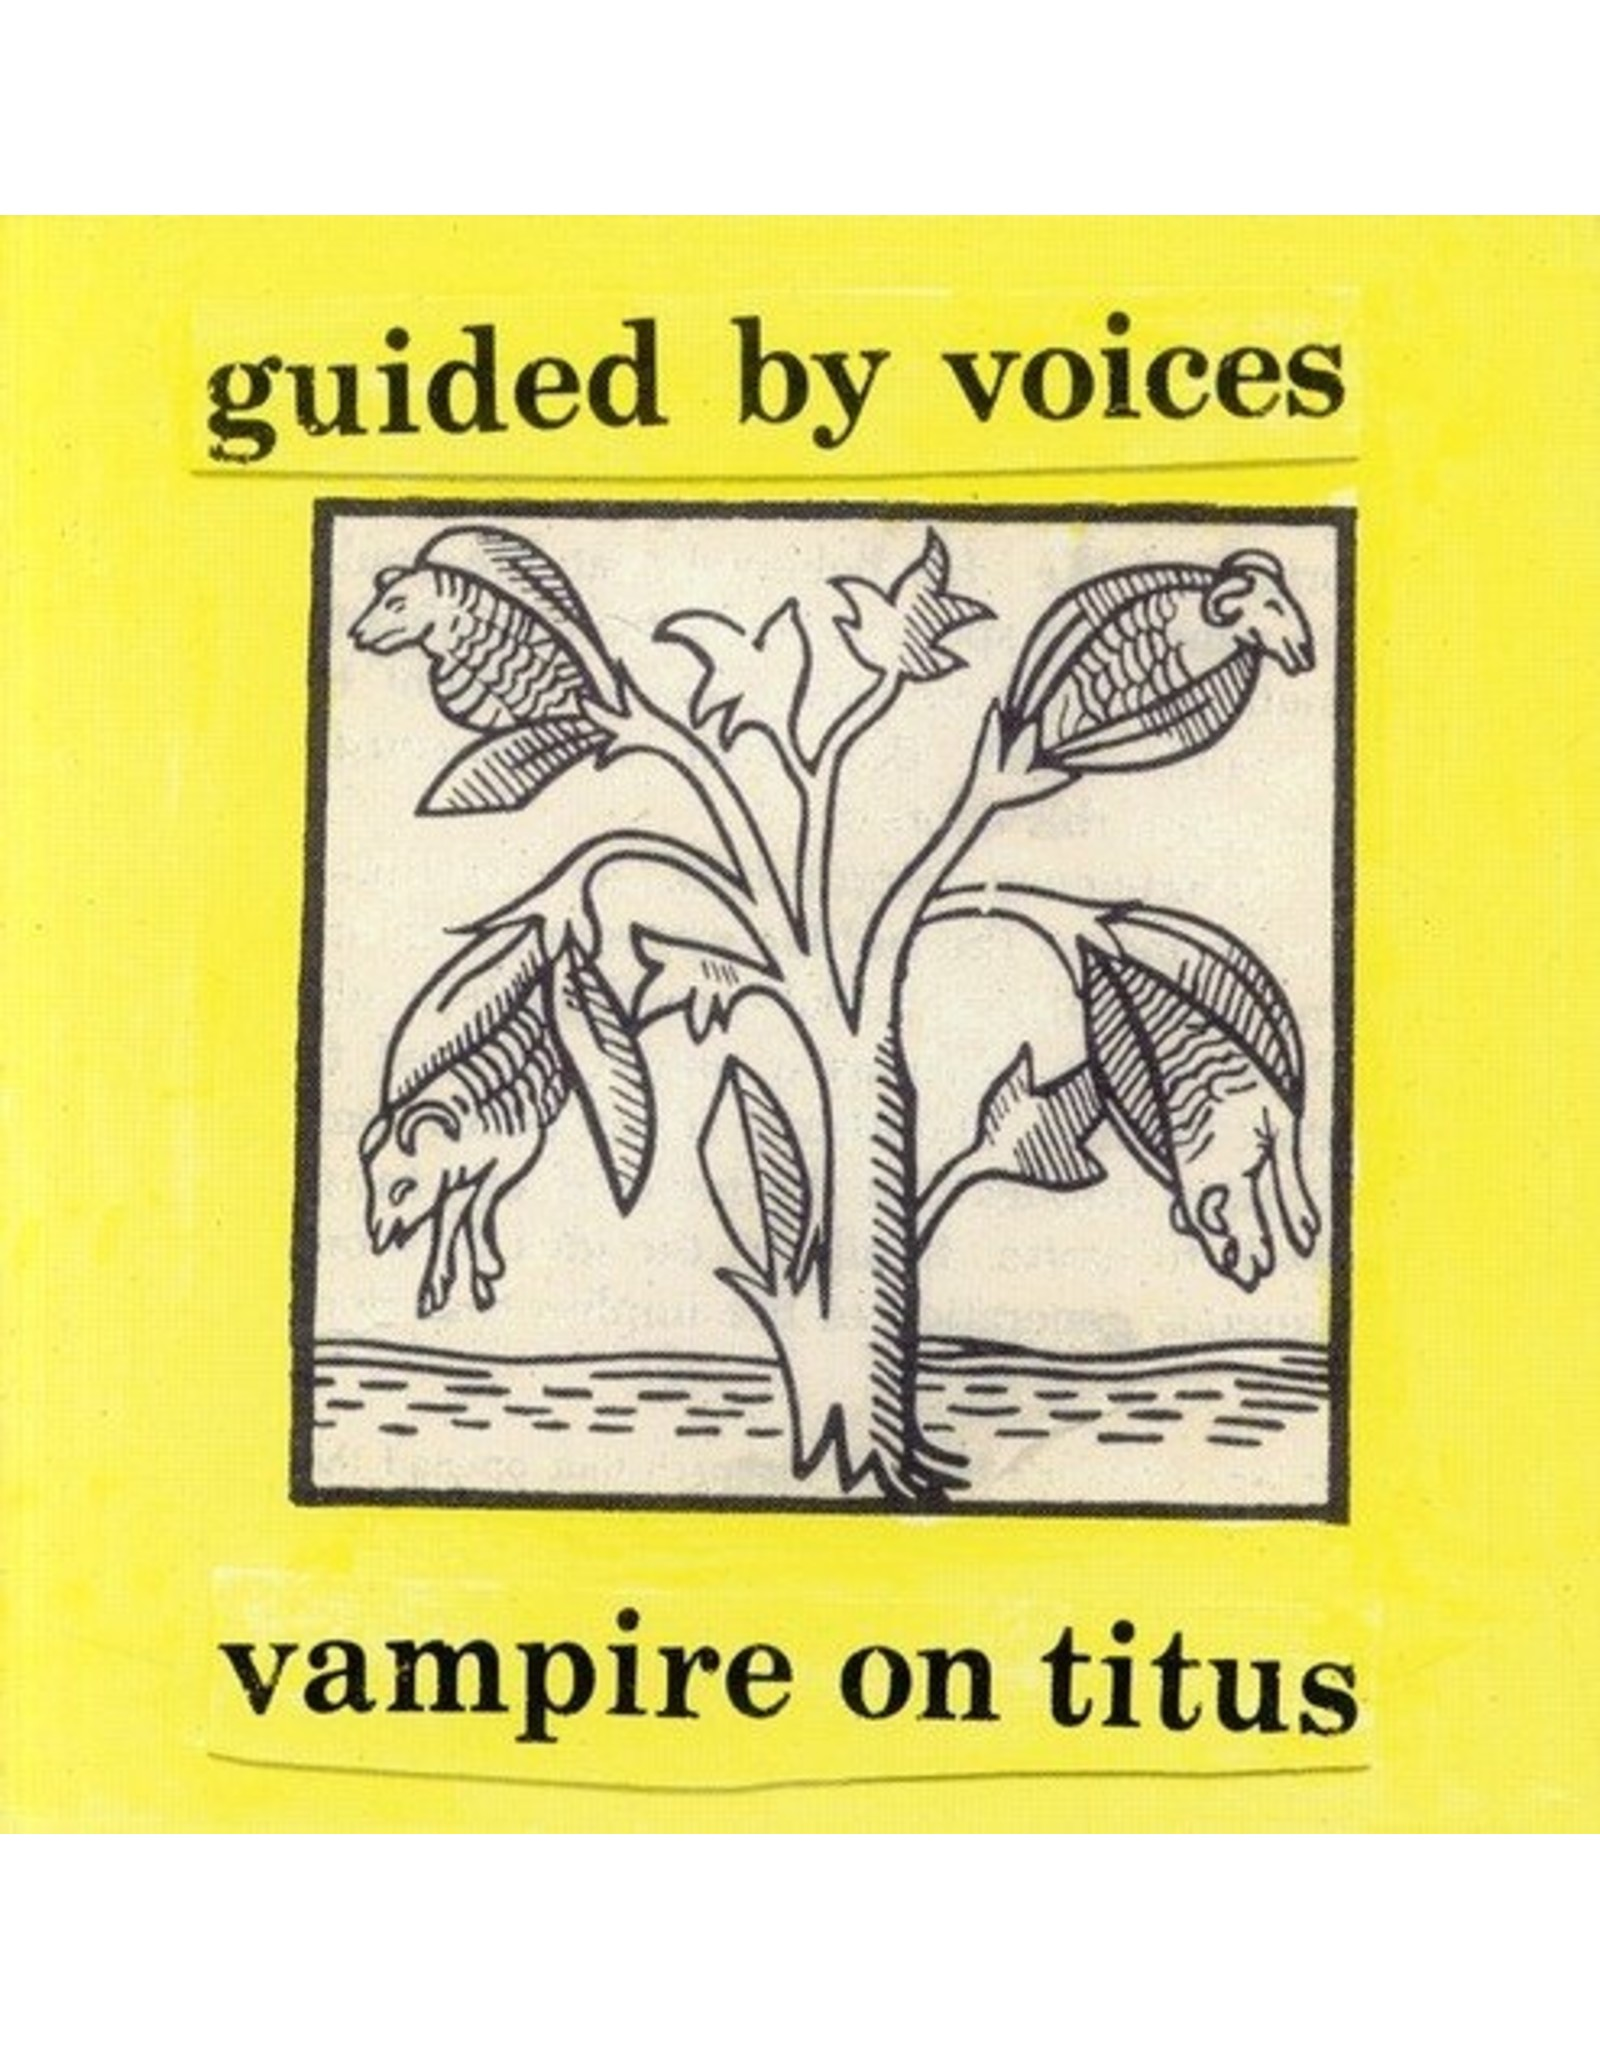 New Vinyl Guided By Voices - Vampire On Titus LP